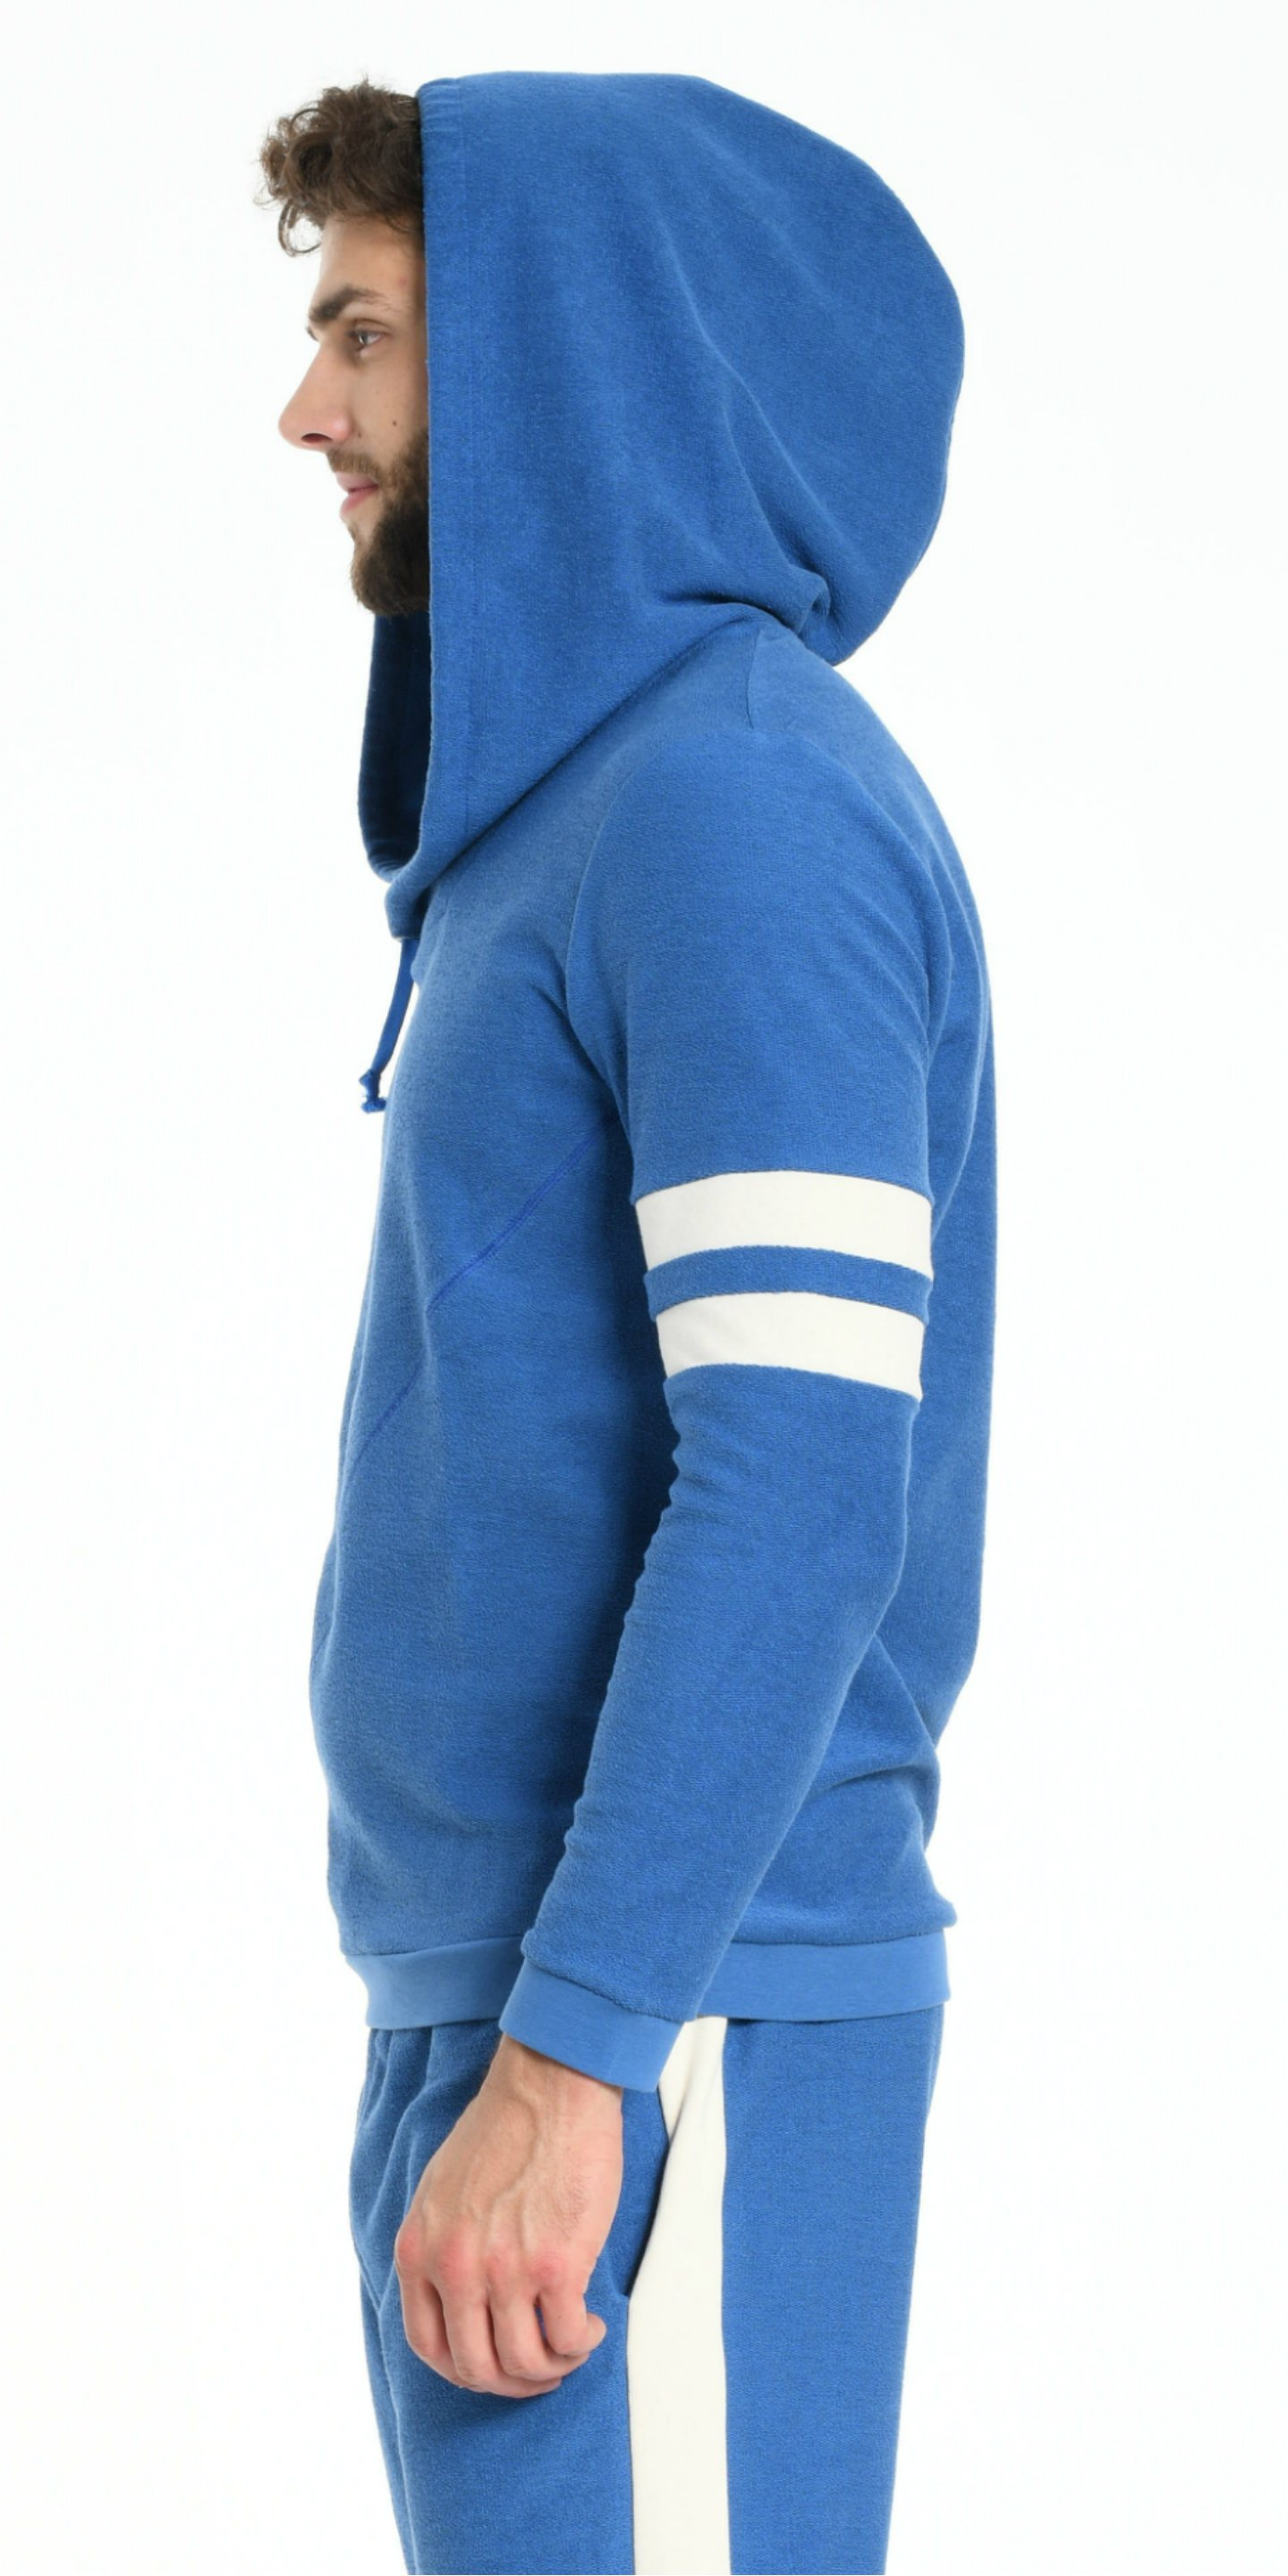 HOODIE BLUE WITH OFF WHITE STRIPS from BEARD & FRINGE